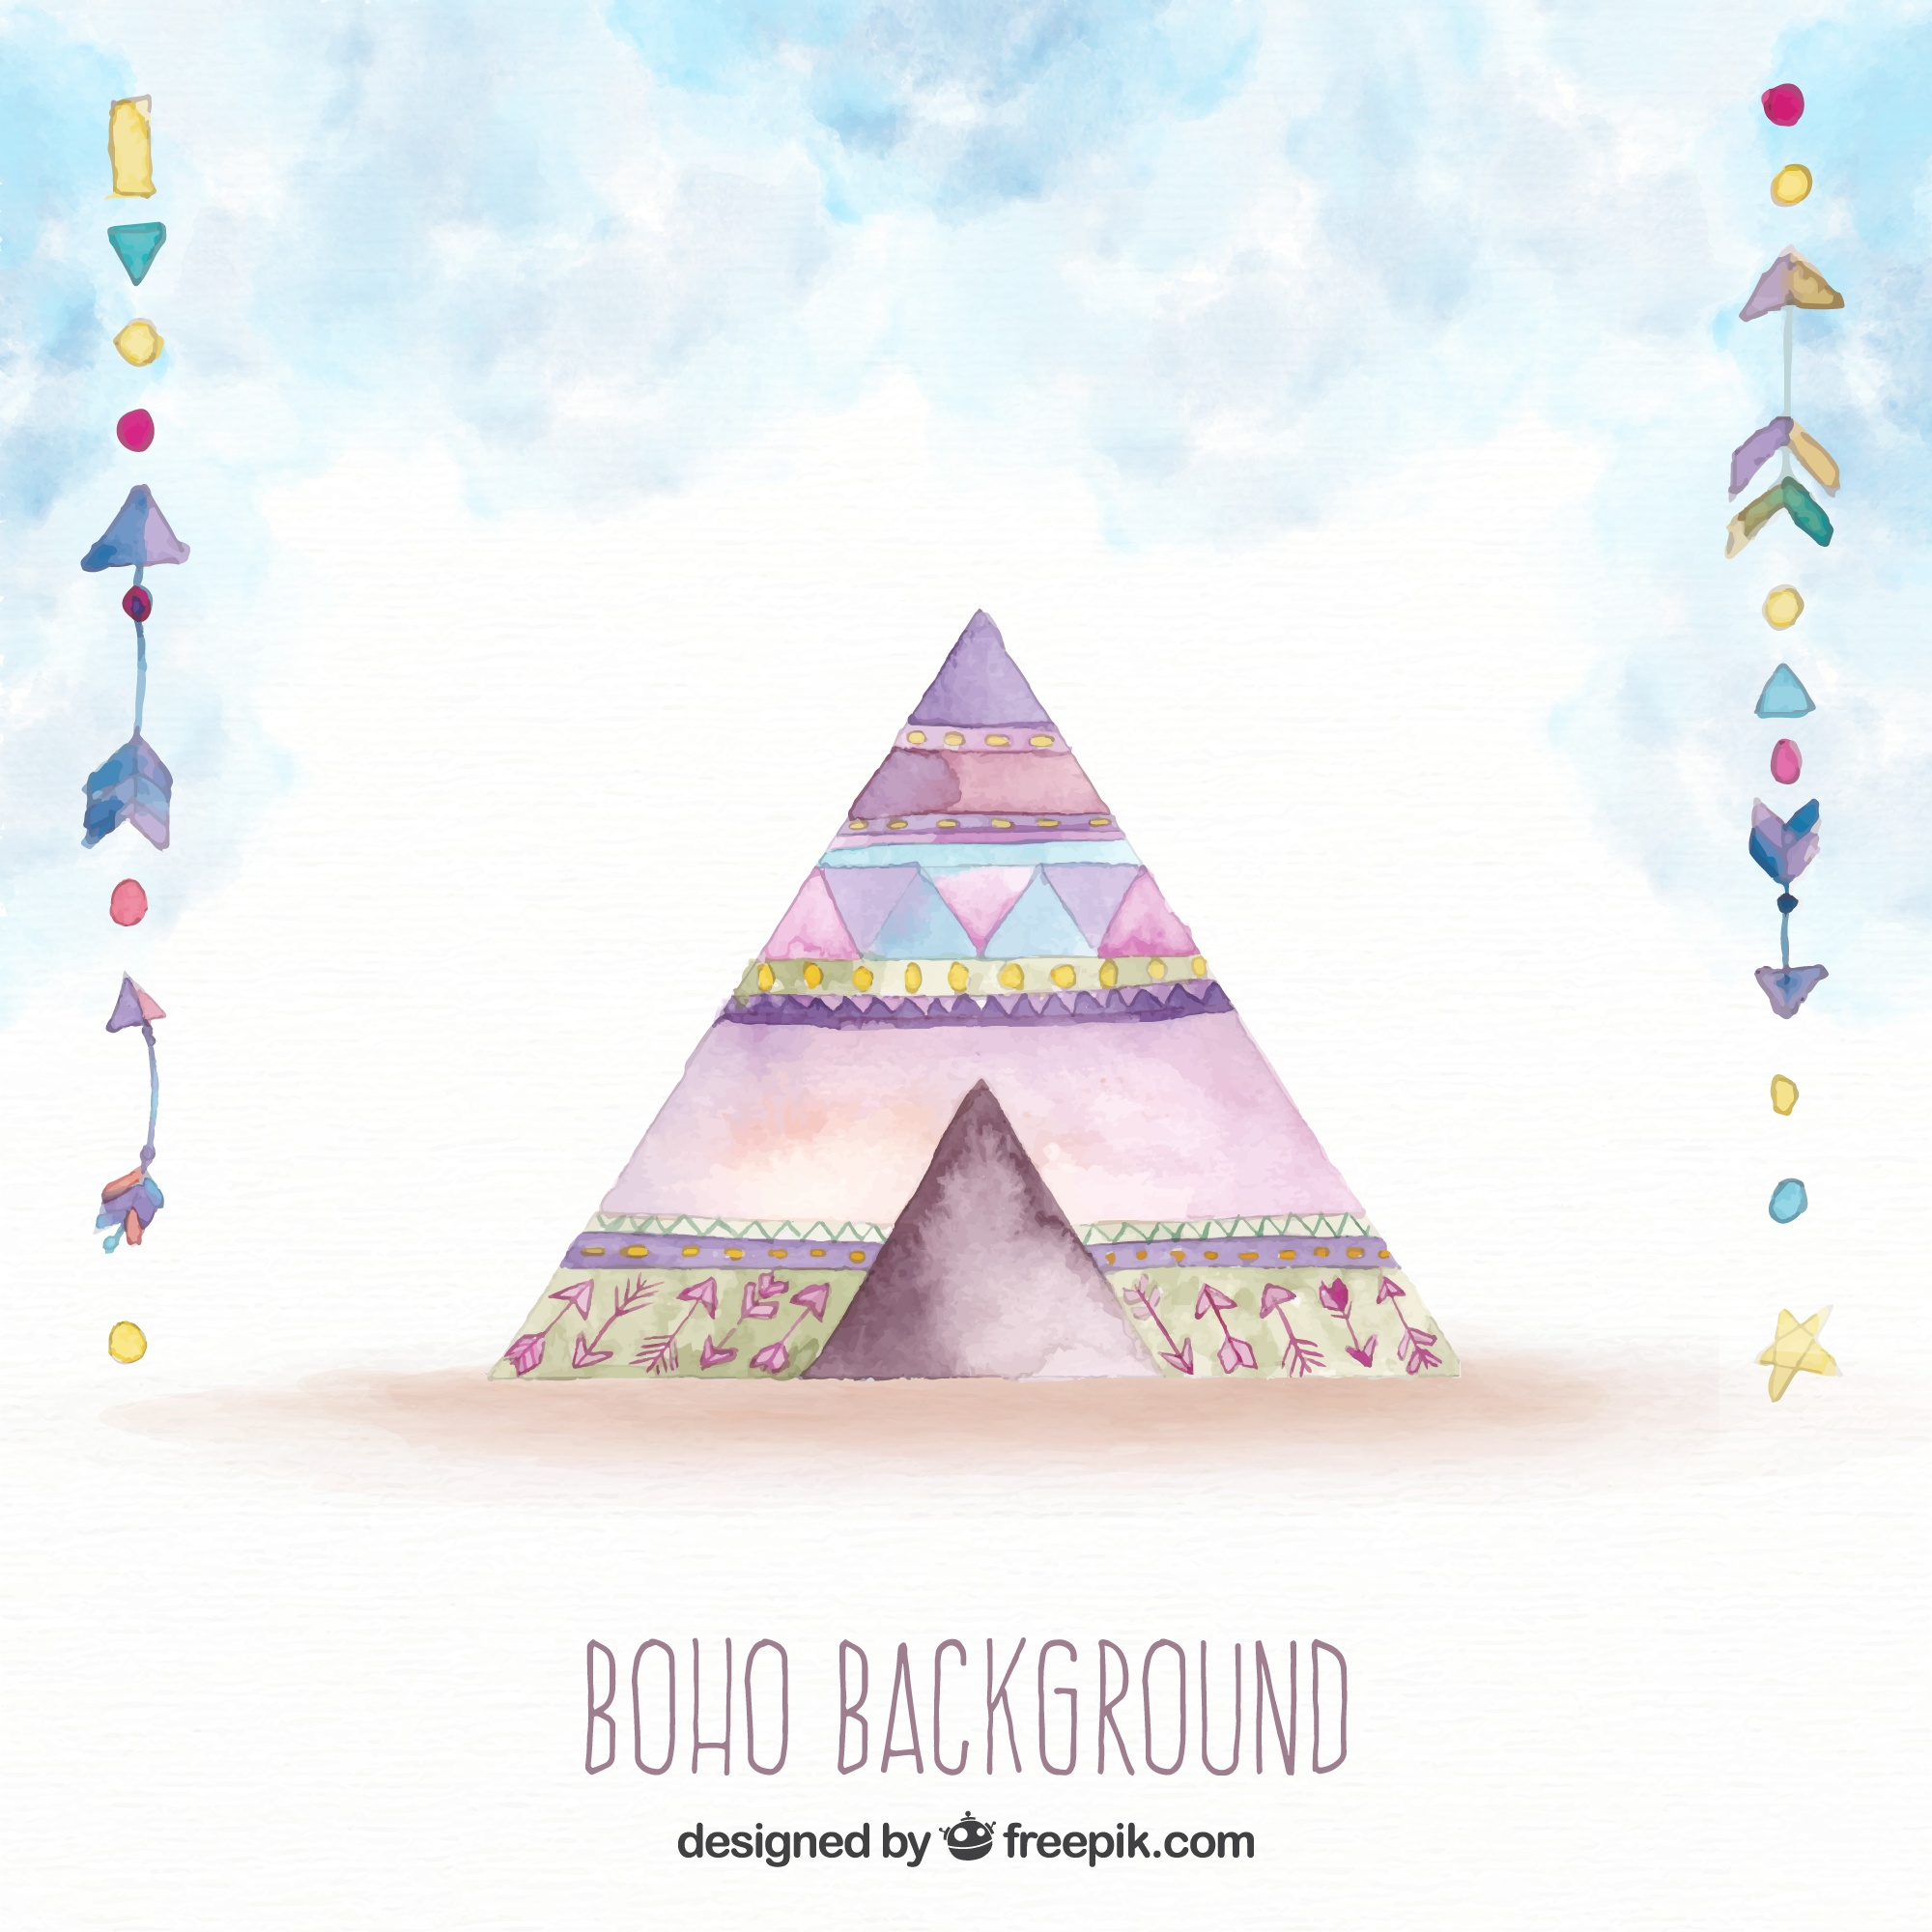 Boho background with tent in watercolor style